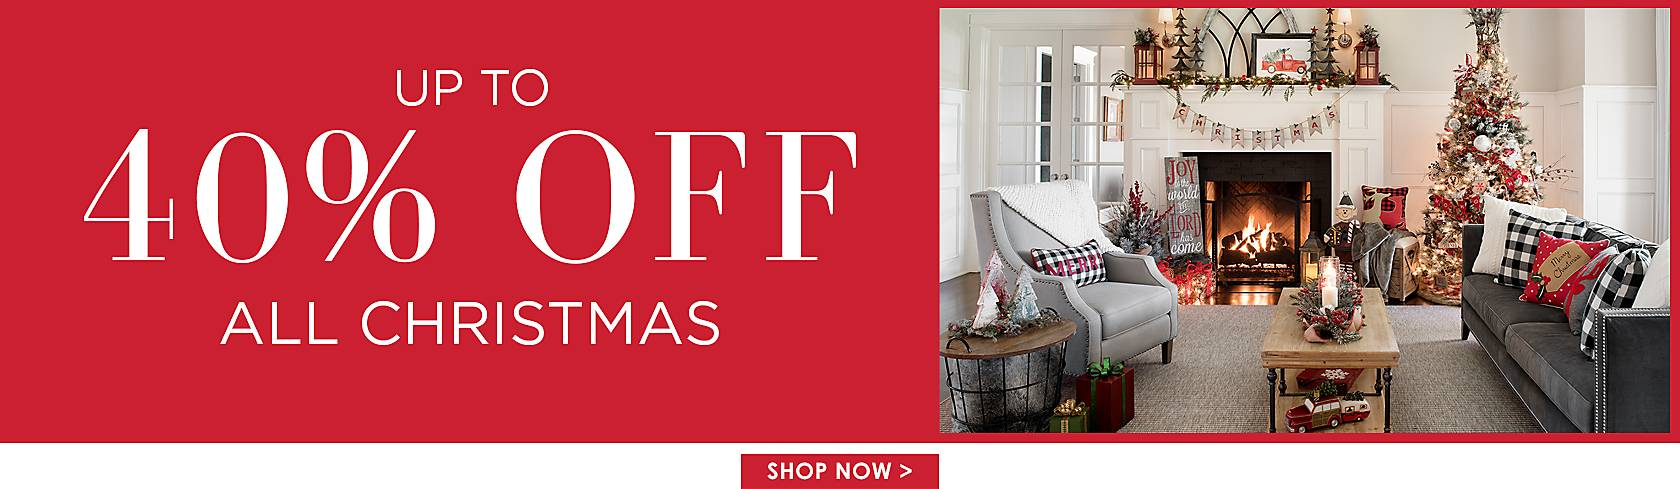 Home decor wall decor furniture unique gifts kirklands up to 40 off all christmas decor hundreds of items to choose from amipublicfo Images